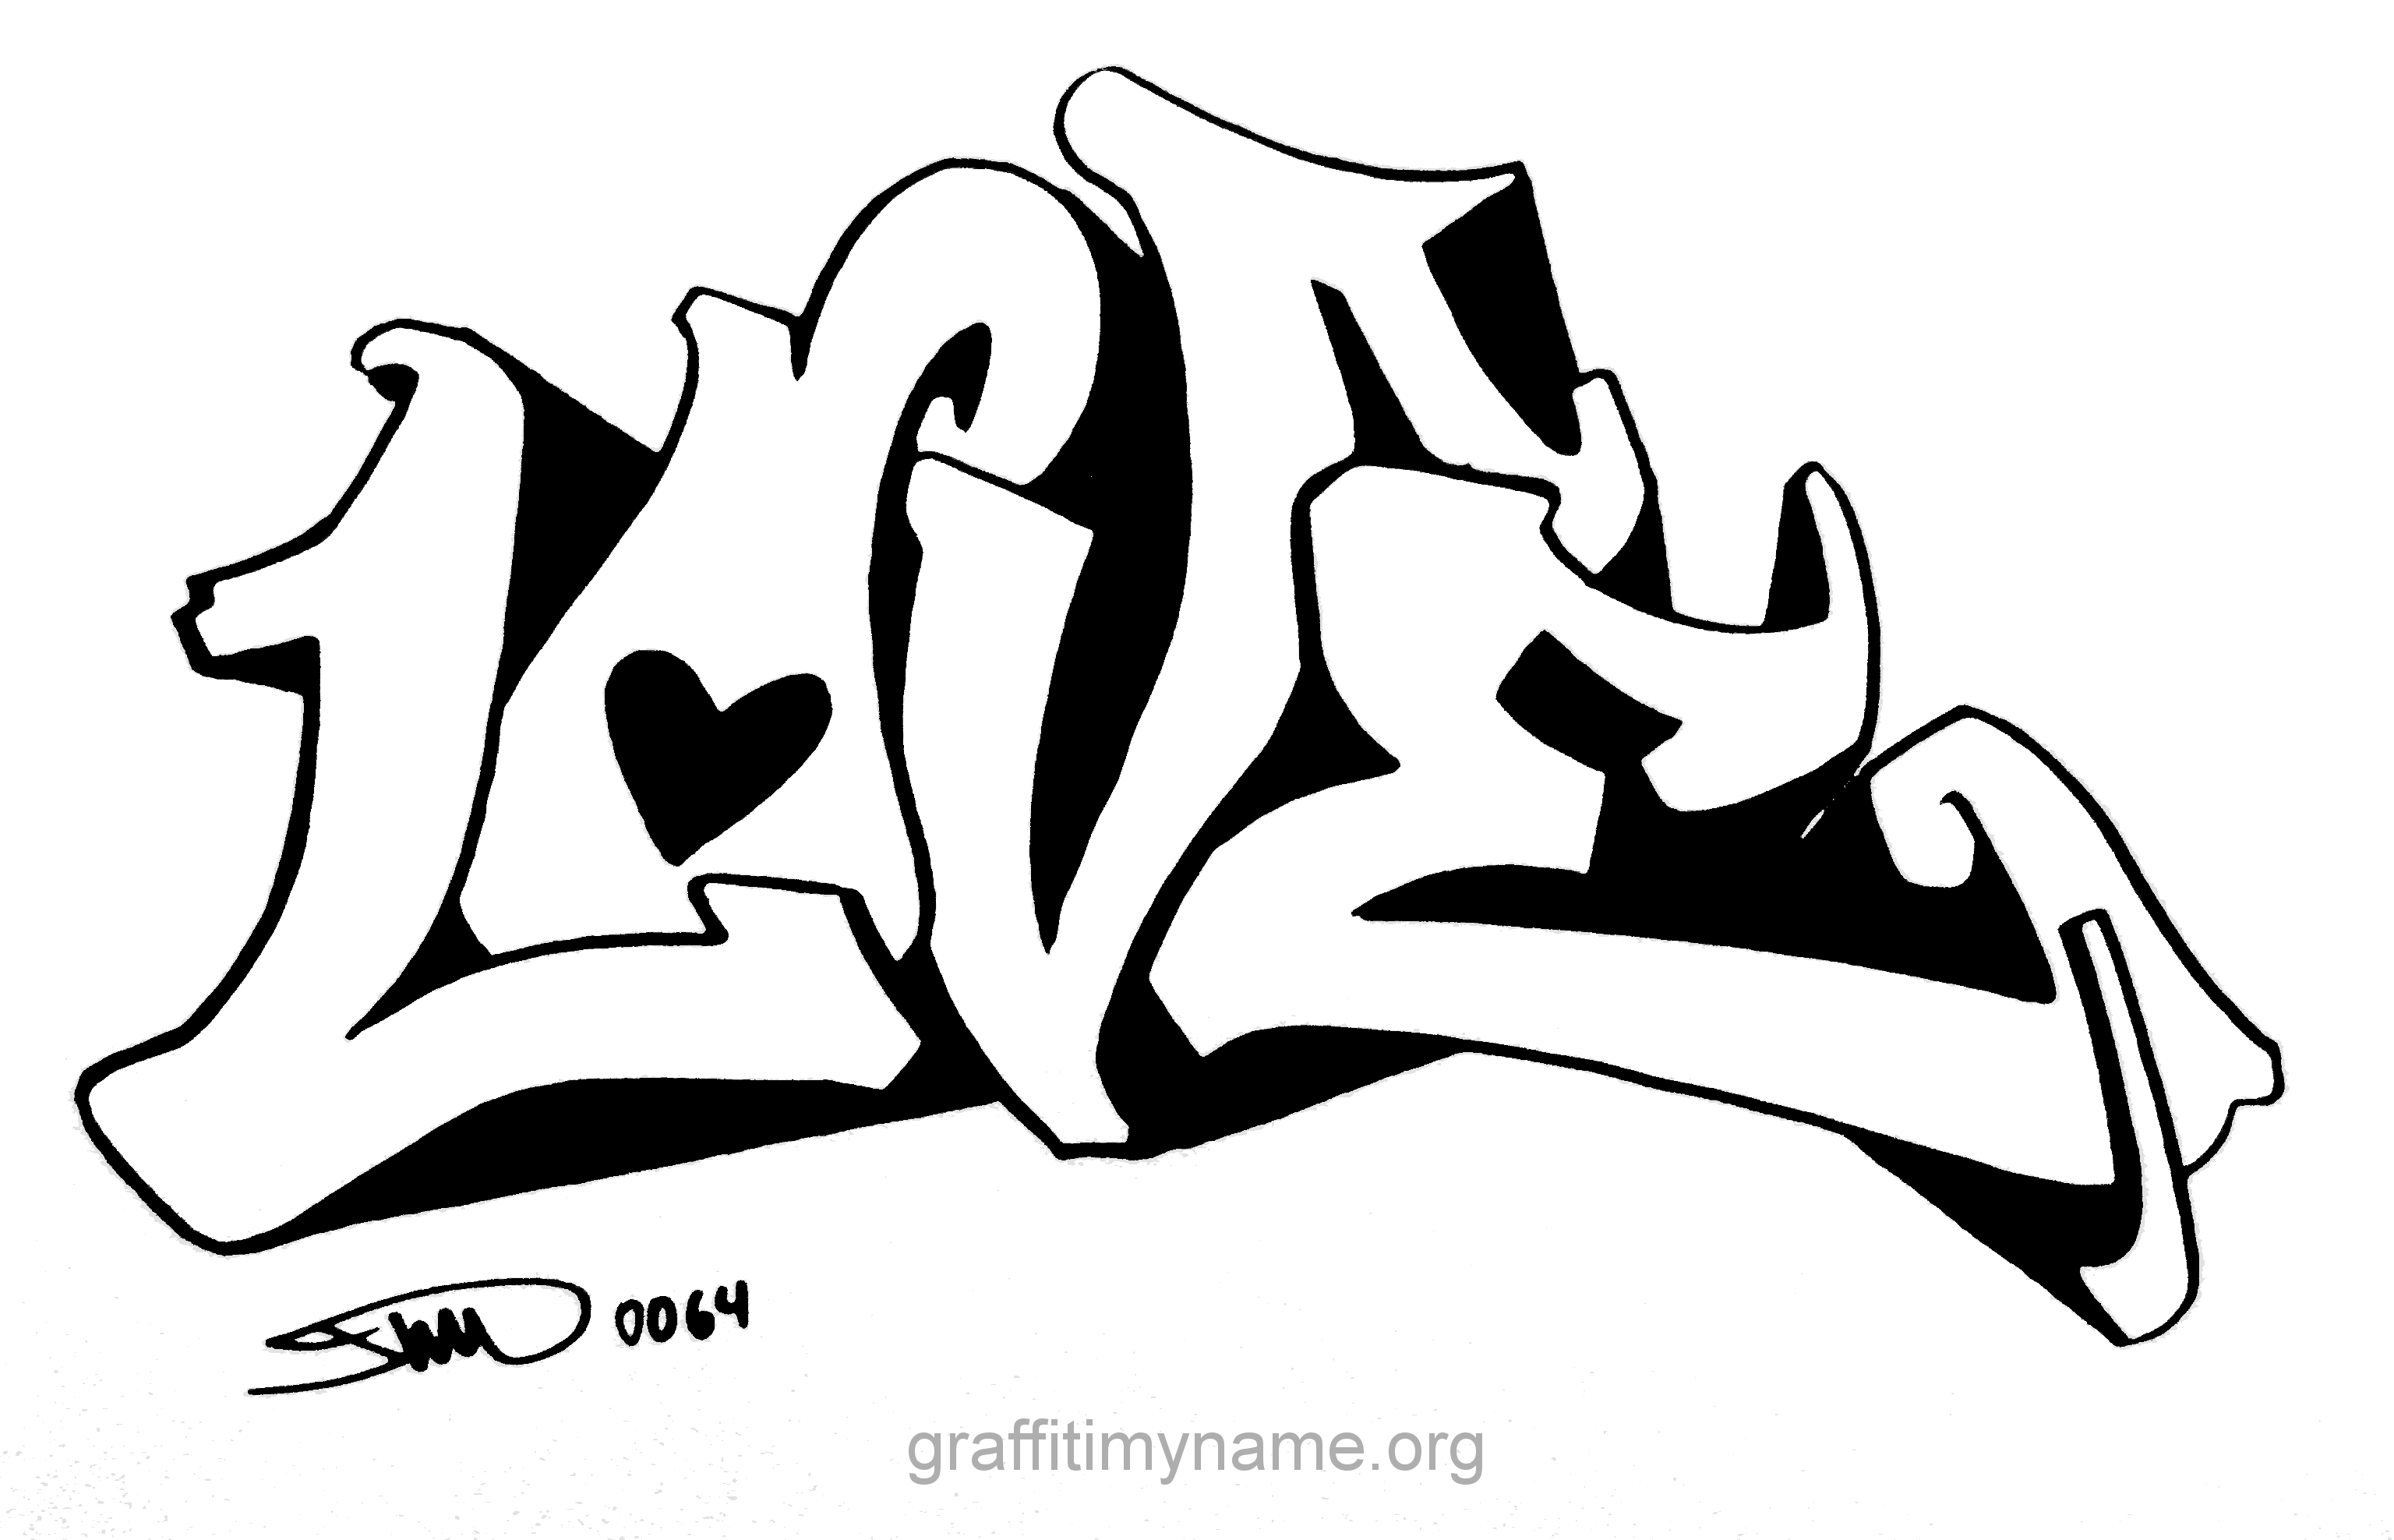 I Love You Coloring Pages Pdf : Pics of love you graffiti coloring pages i